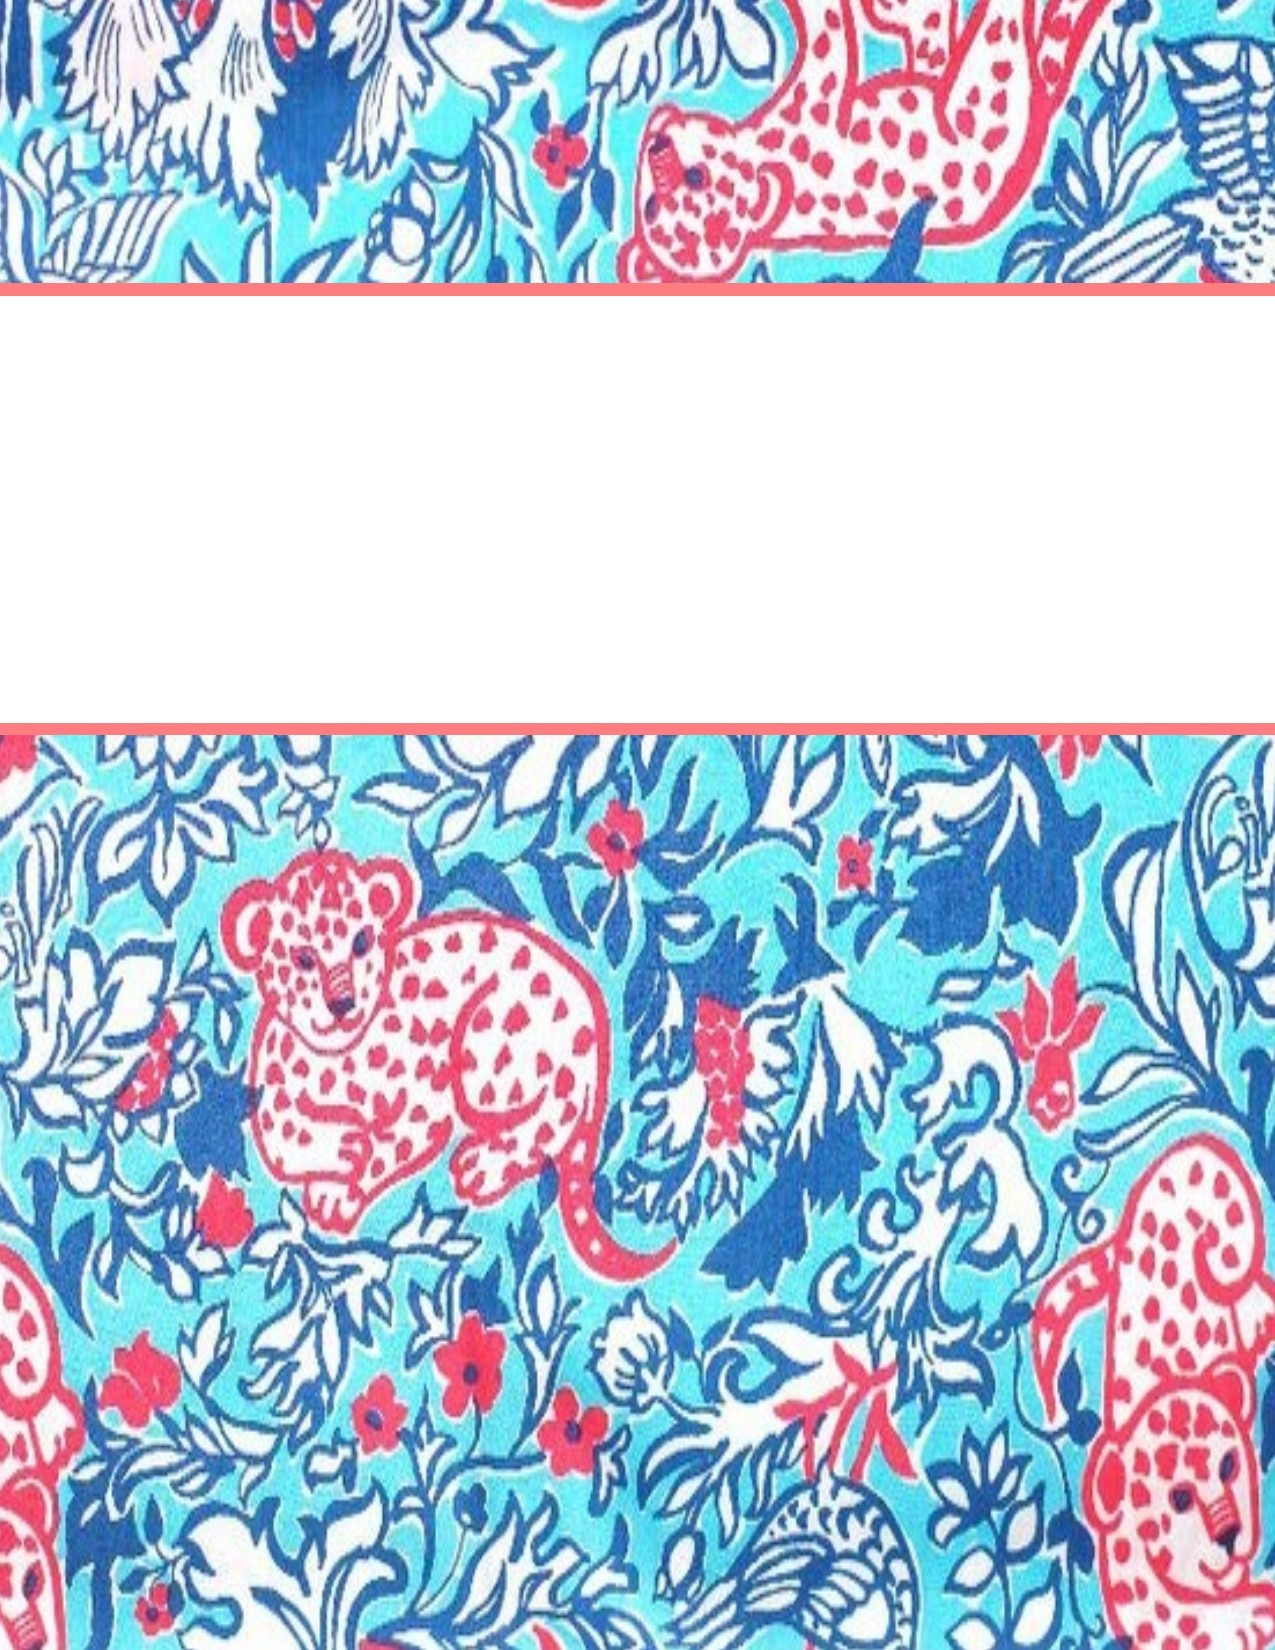 STUDY AHOLIC — Patterned Binder Covers Hello Friends